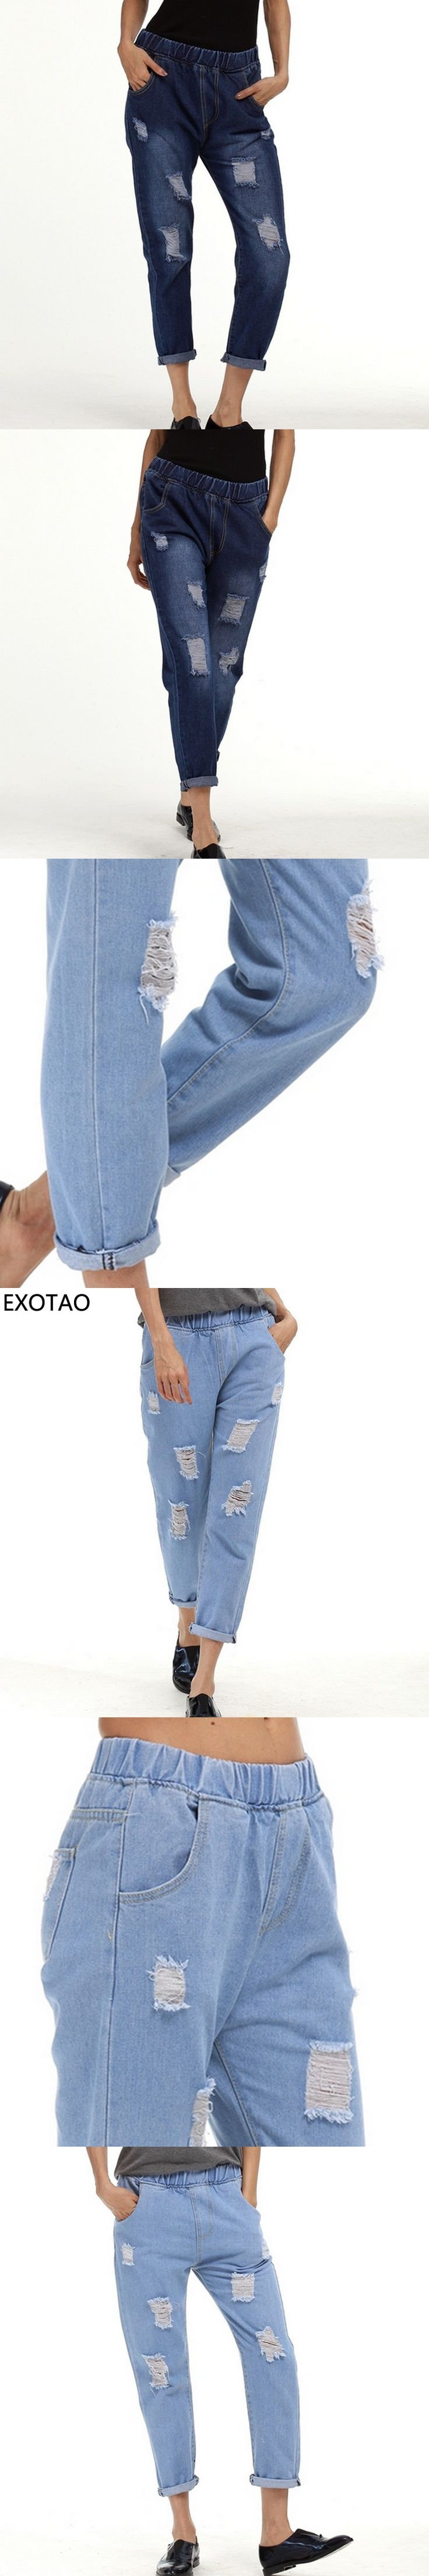 Elastic High Waist Ripped Jeans for Women 2017 Spring Oversized Vaqueros Mujer with Pockets Pantalones Vintage Trousers S~5XL